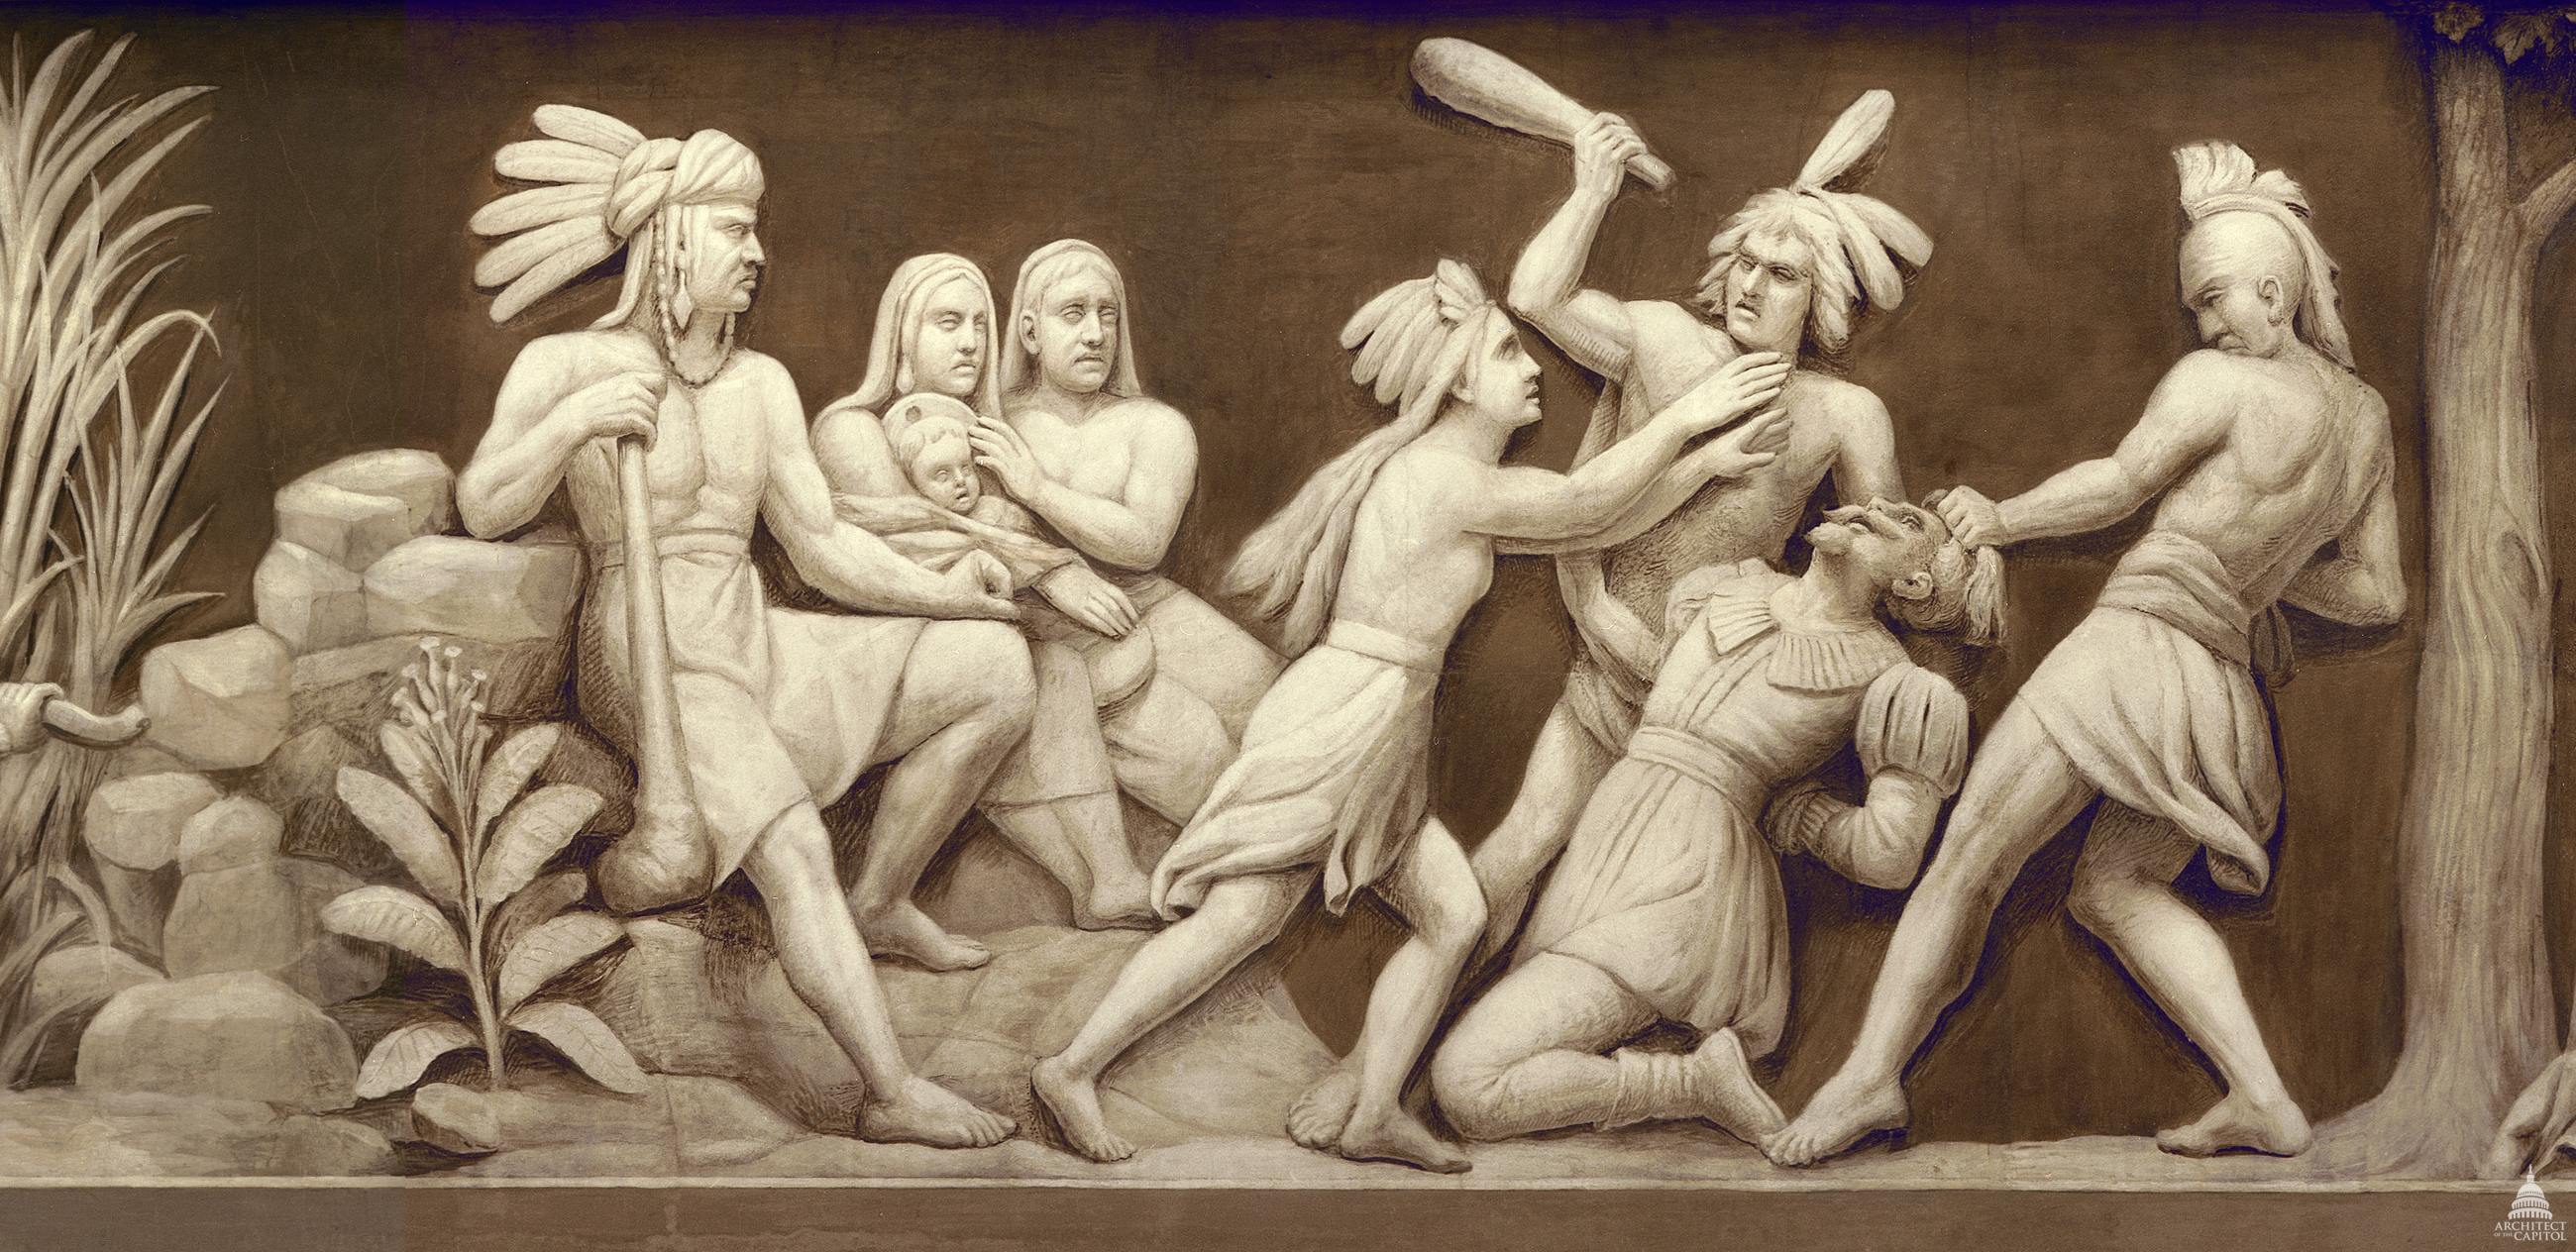 In this scene from the Frieze of American History, Pocahontas saves Captain John Smith, one of the founders of Jamestown, Virginia, from being clubbed to death